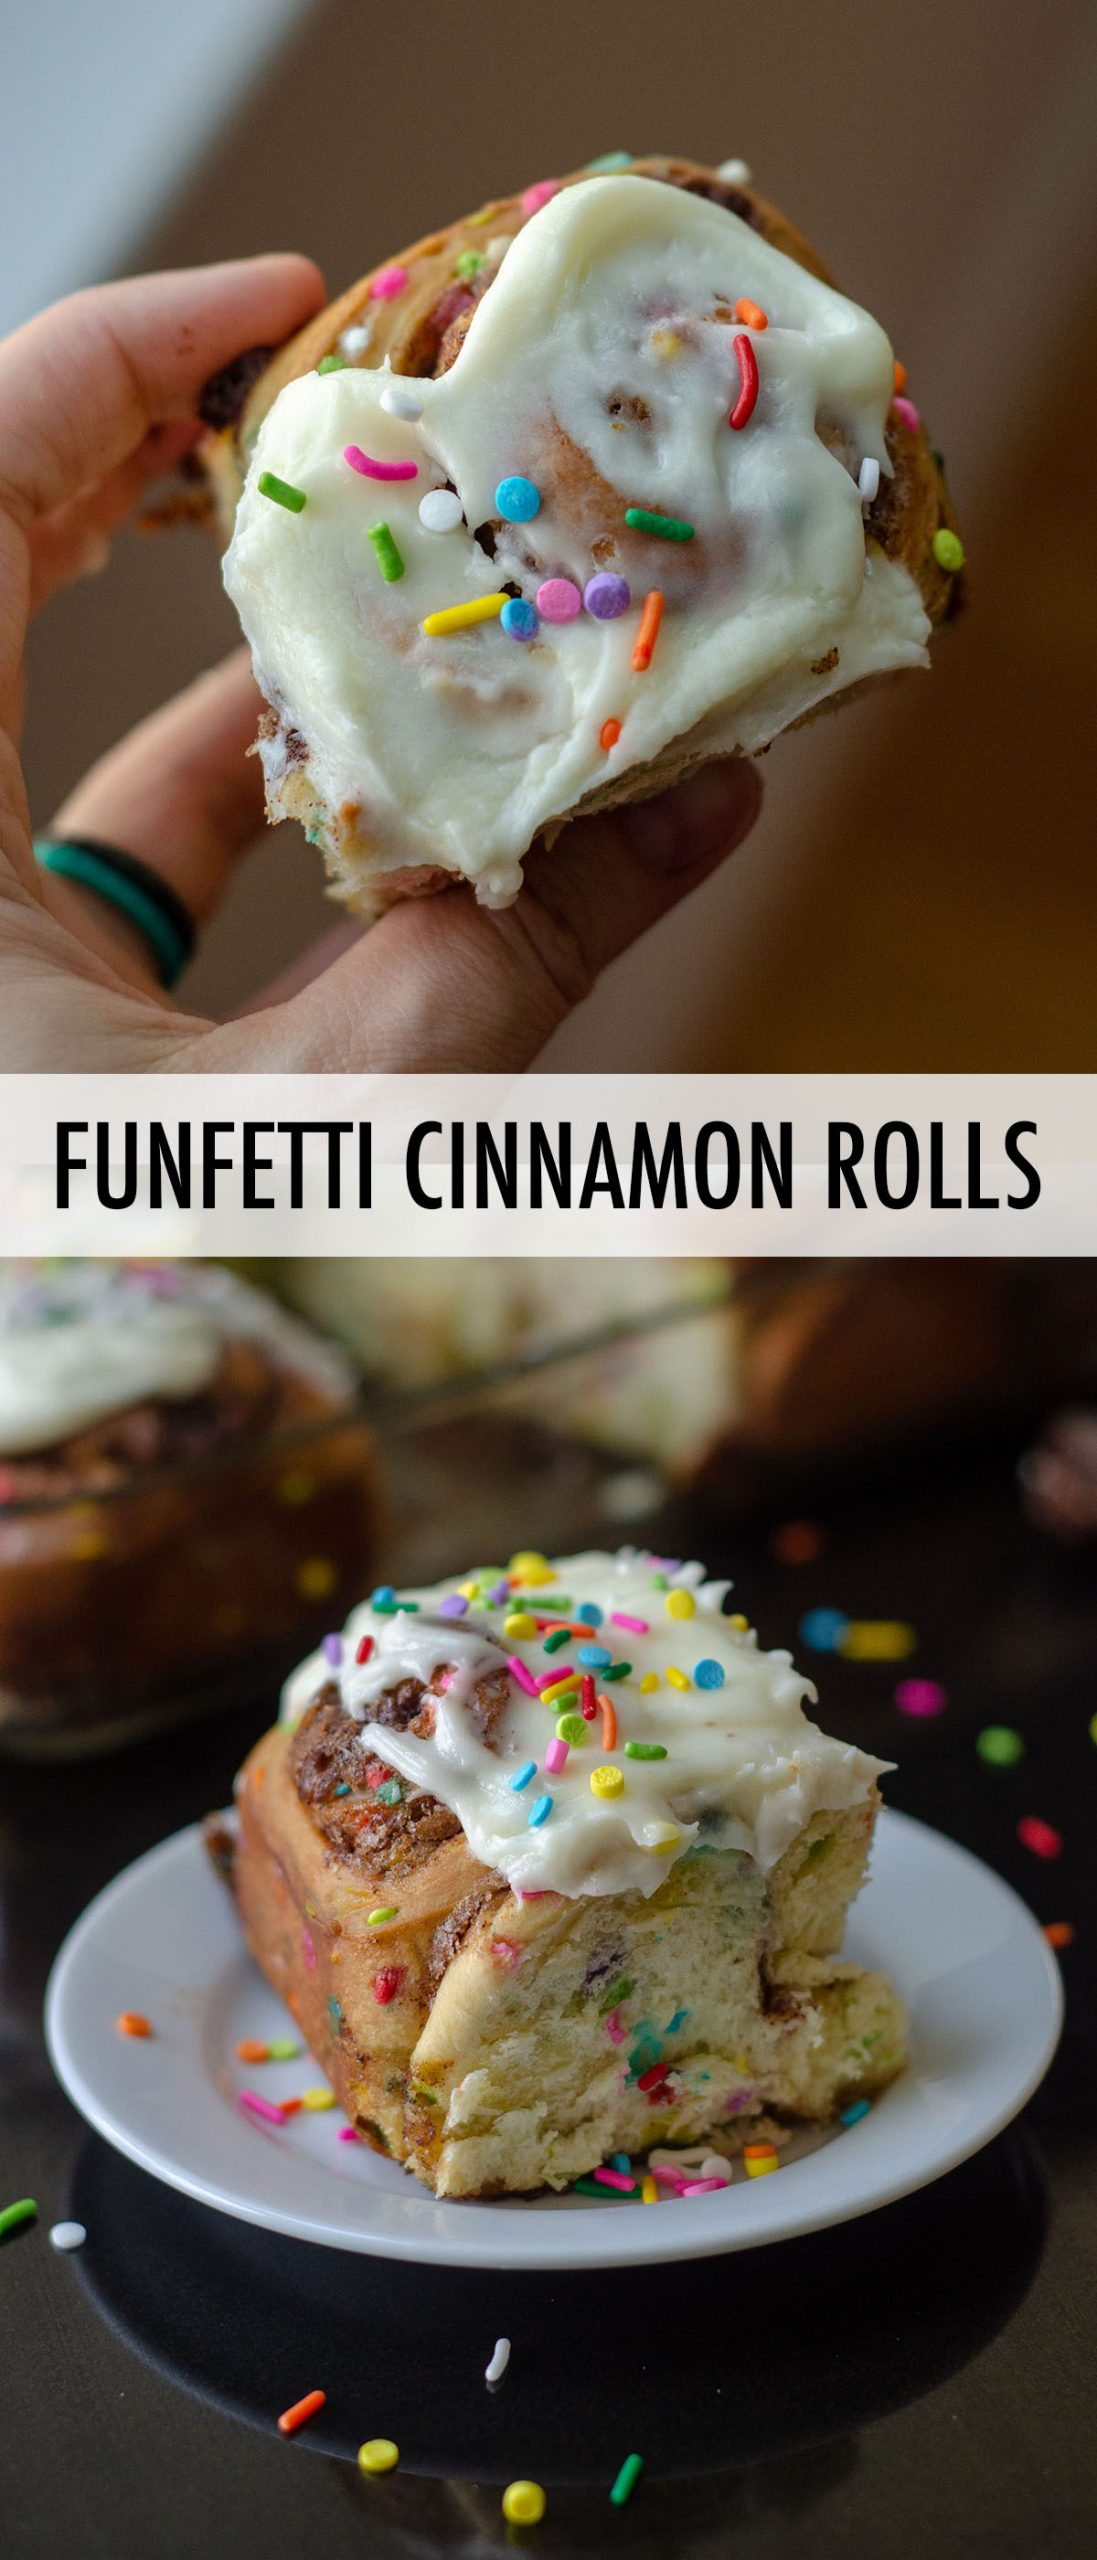 Simple yeast rolls filled with sweet and gooey cinnamon and studded with sprinkles. Spread with easy cream cheese frosting for an indulgent breakfast or treat!